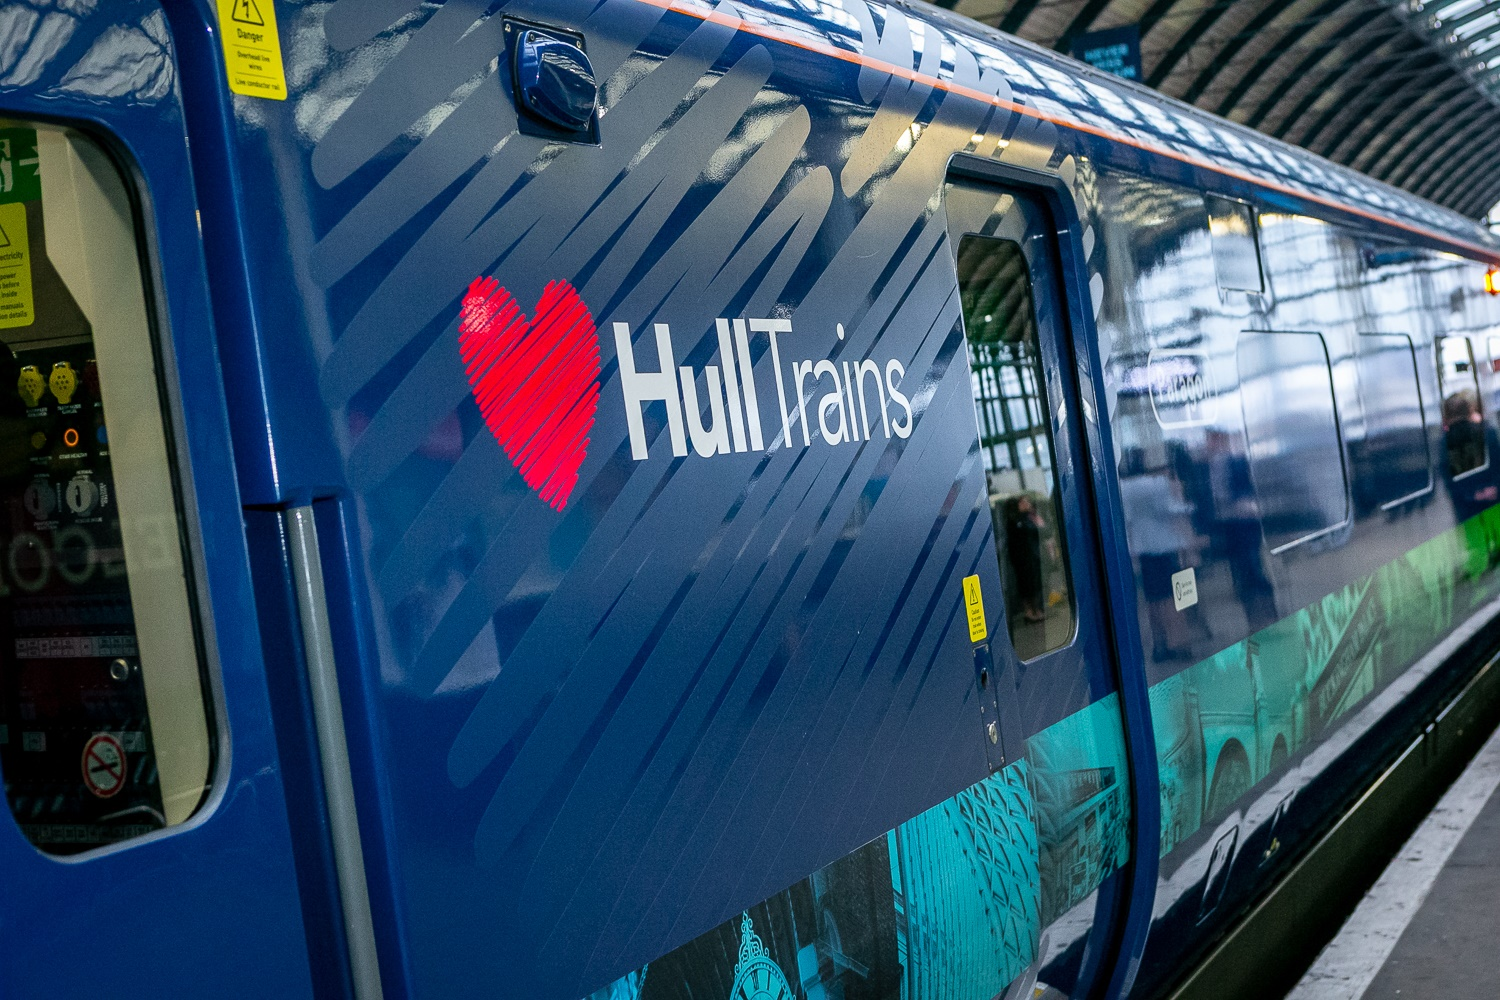 Building on success - Hull Trains